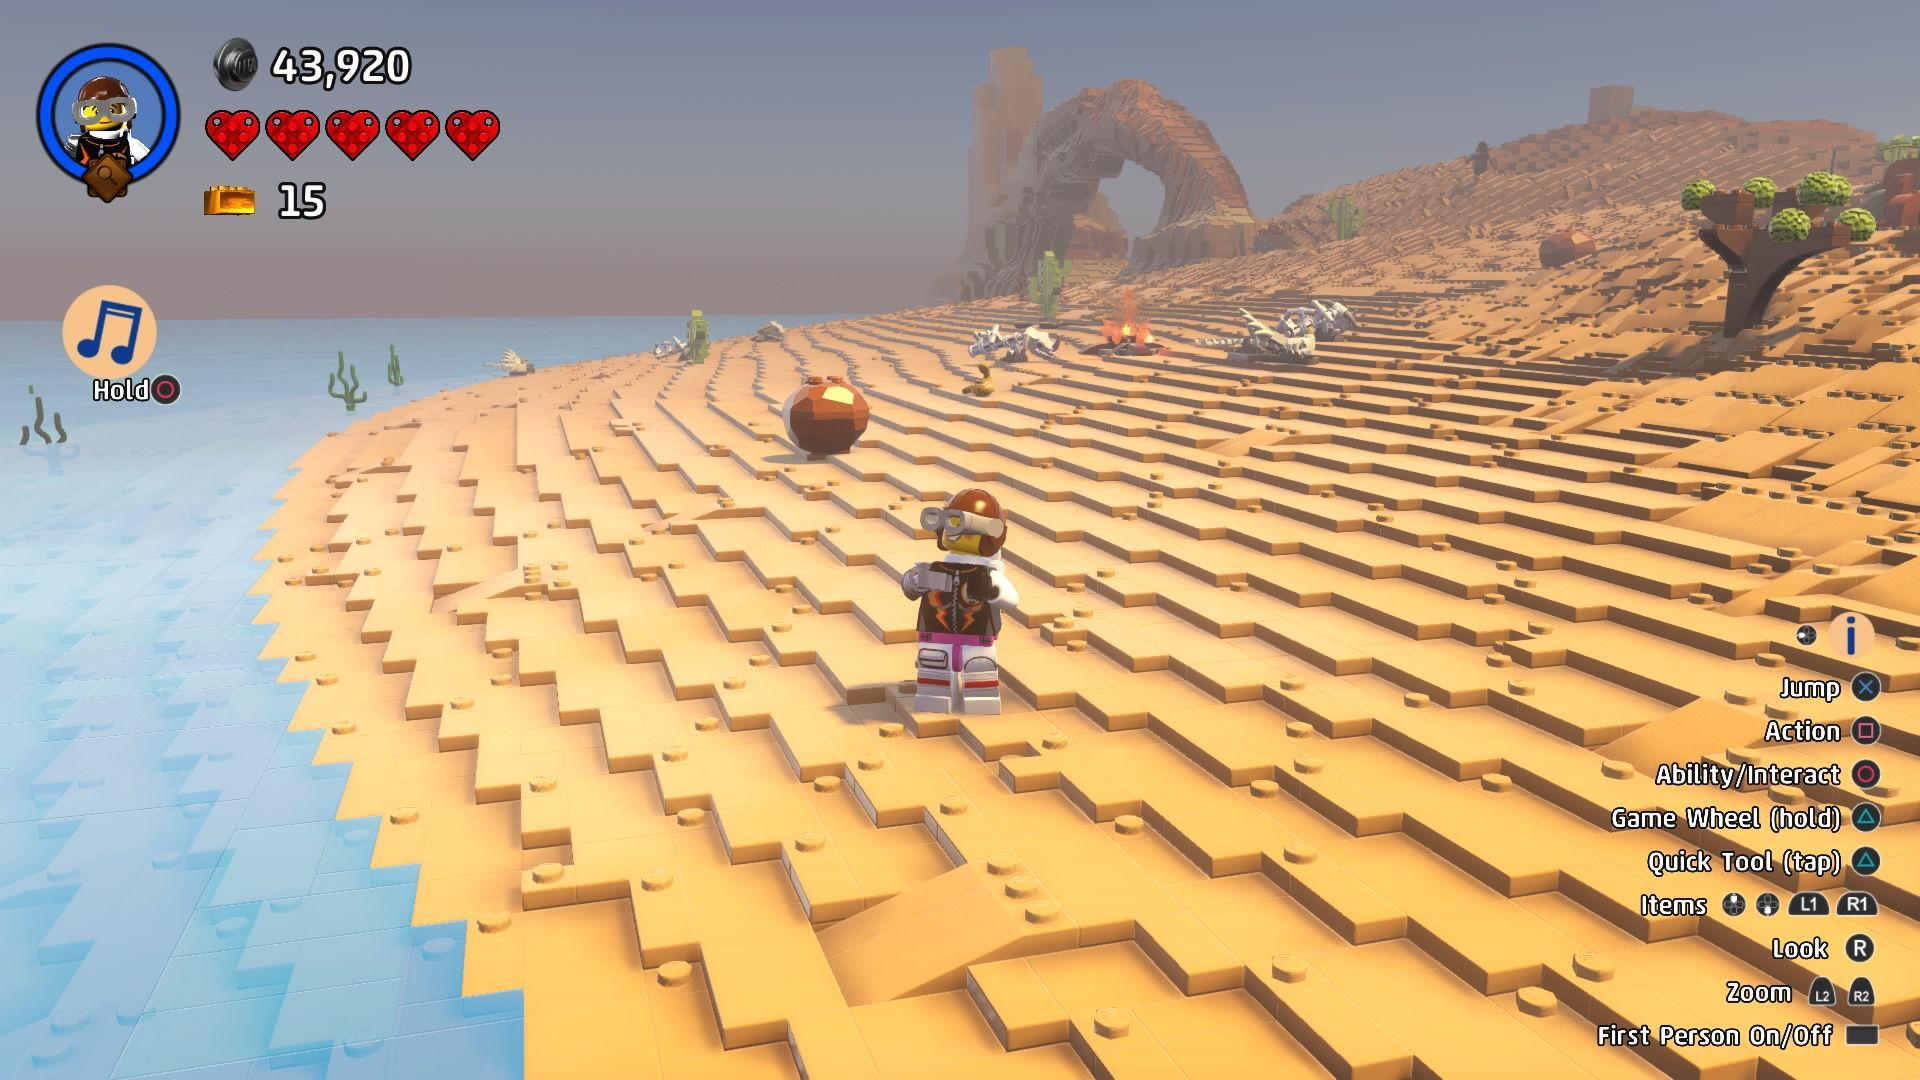 Lego Dimensions Review Lego Worlds Lego Construction Games